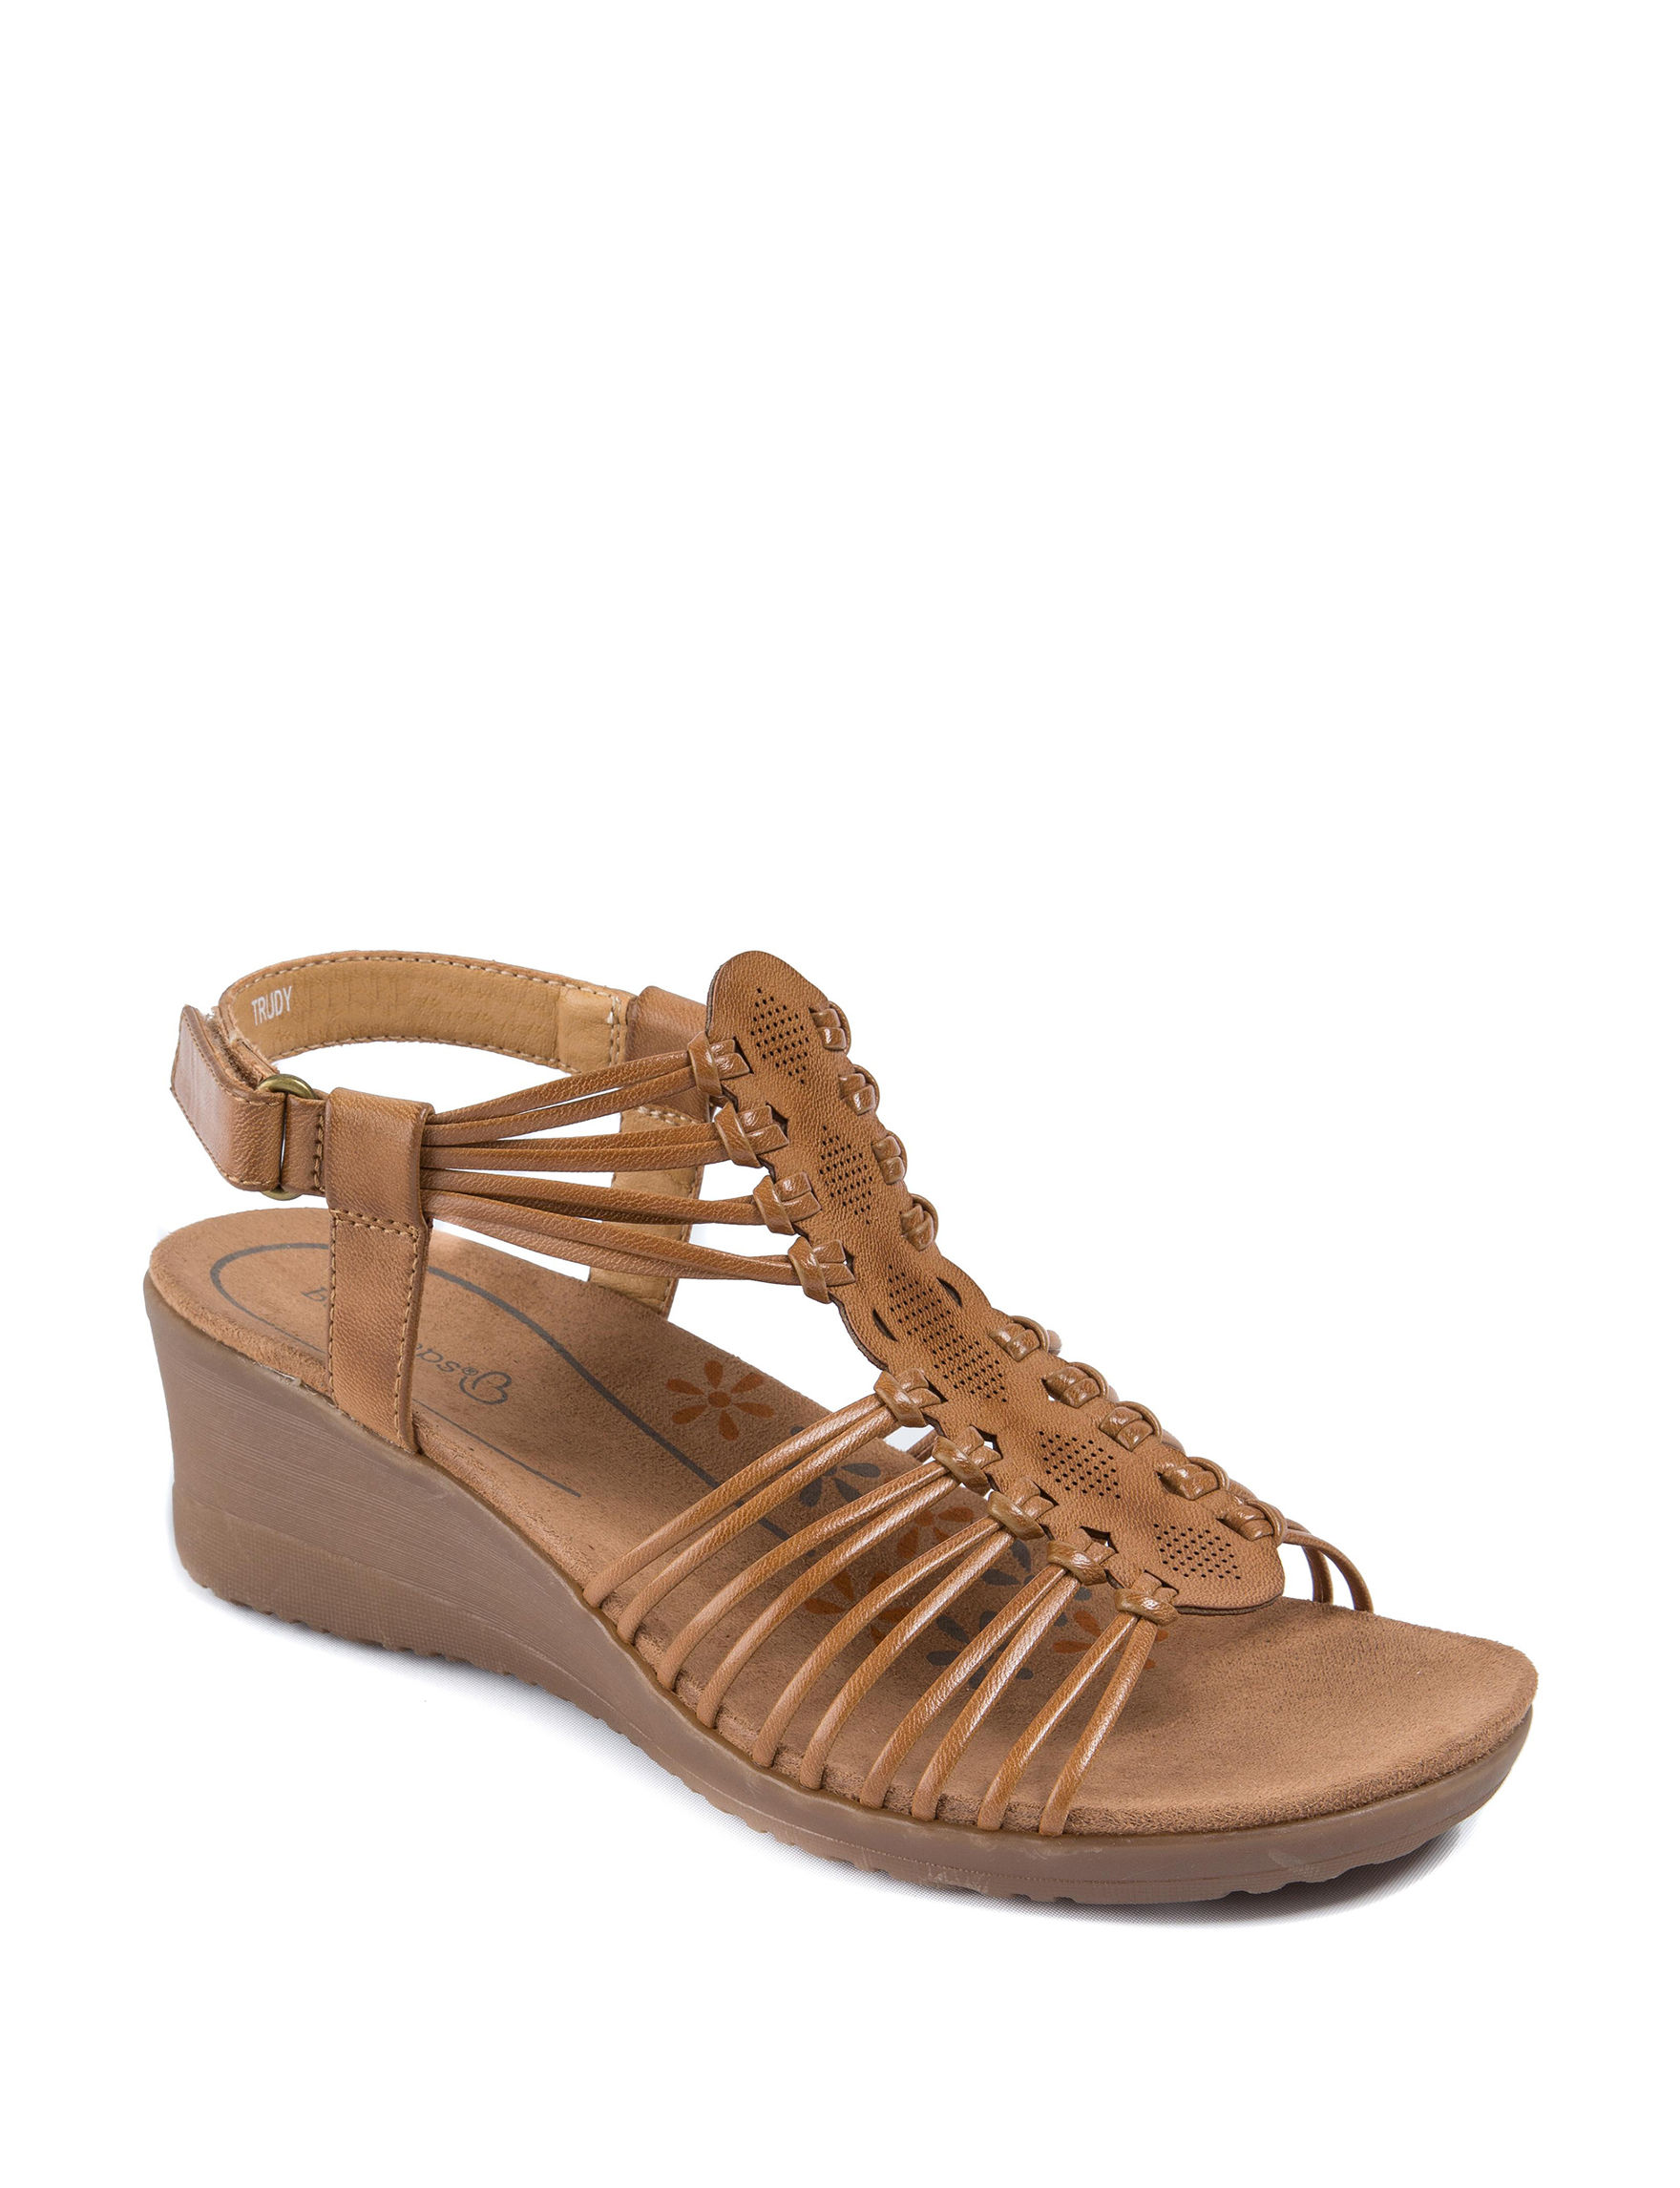 Bare Traps Caramel Wedge Sandals Comfort